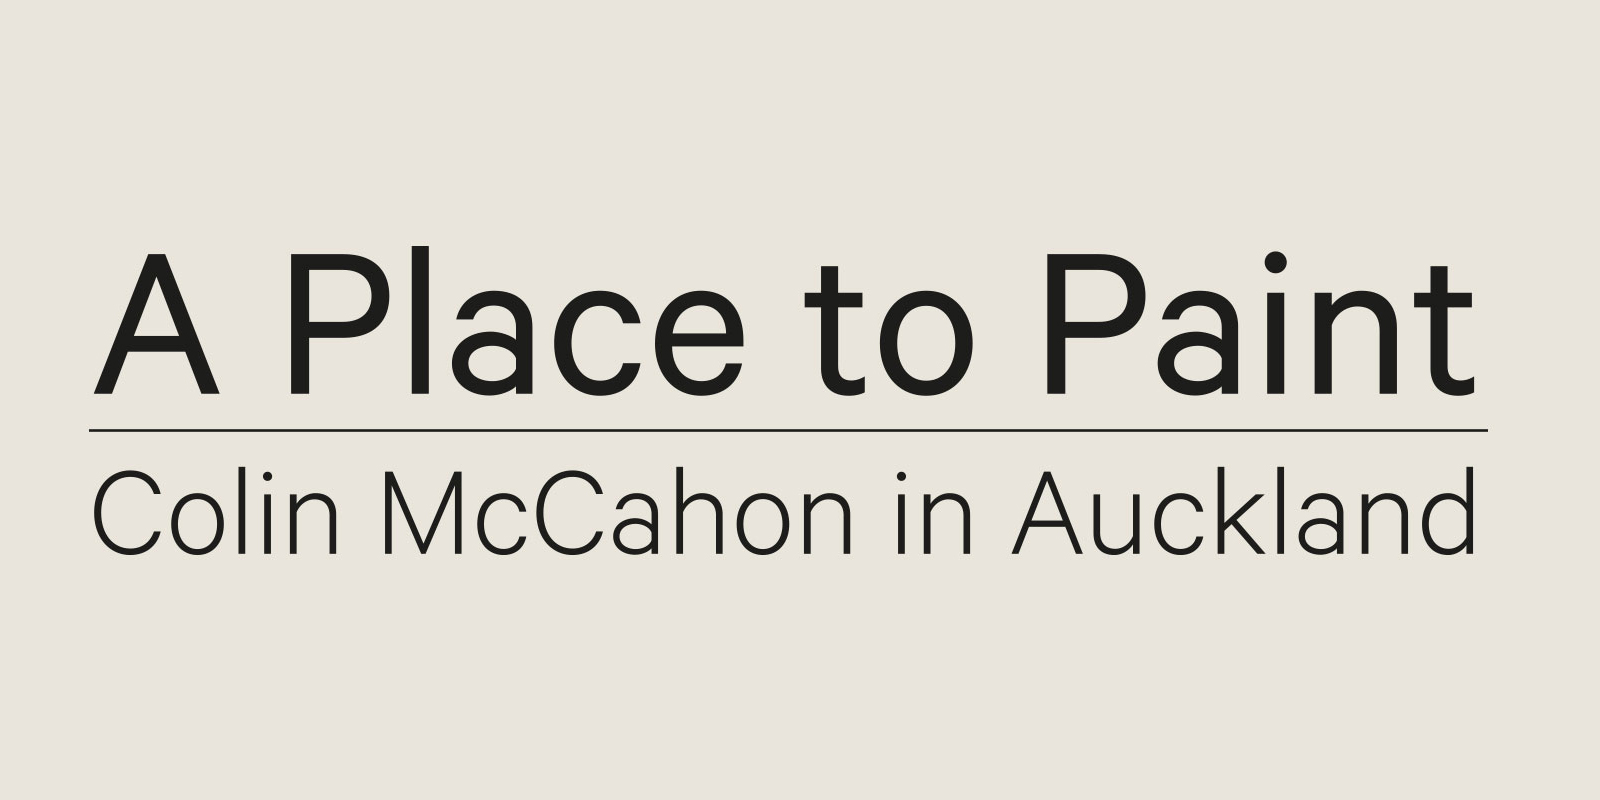 A Place to Paint: Colin McCahon in Auckland